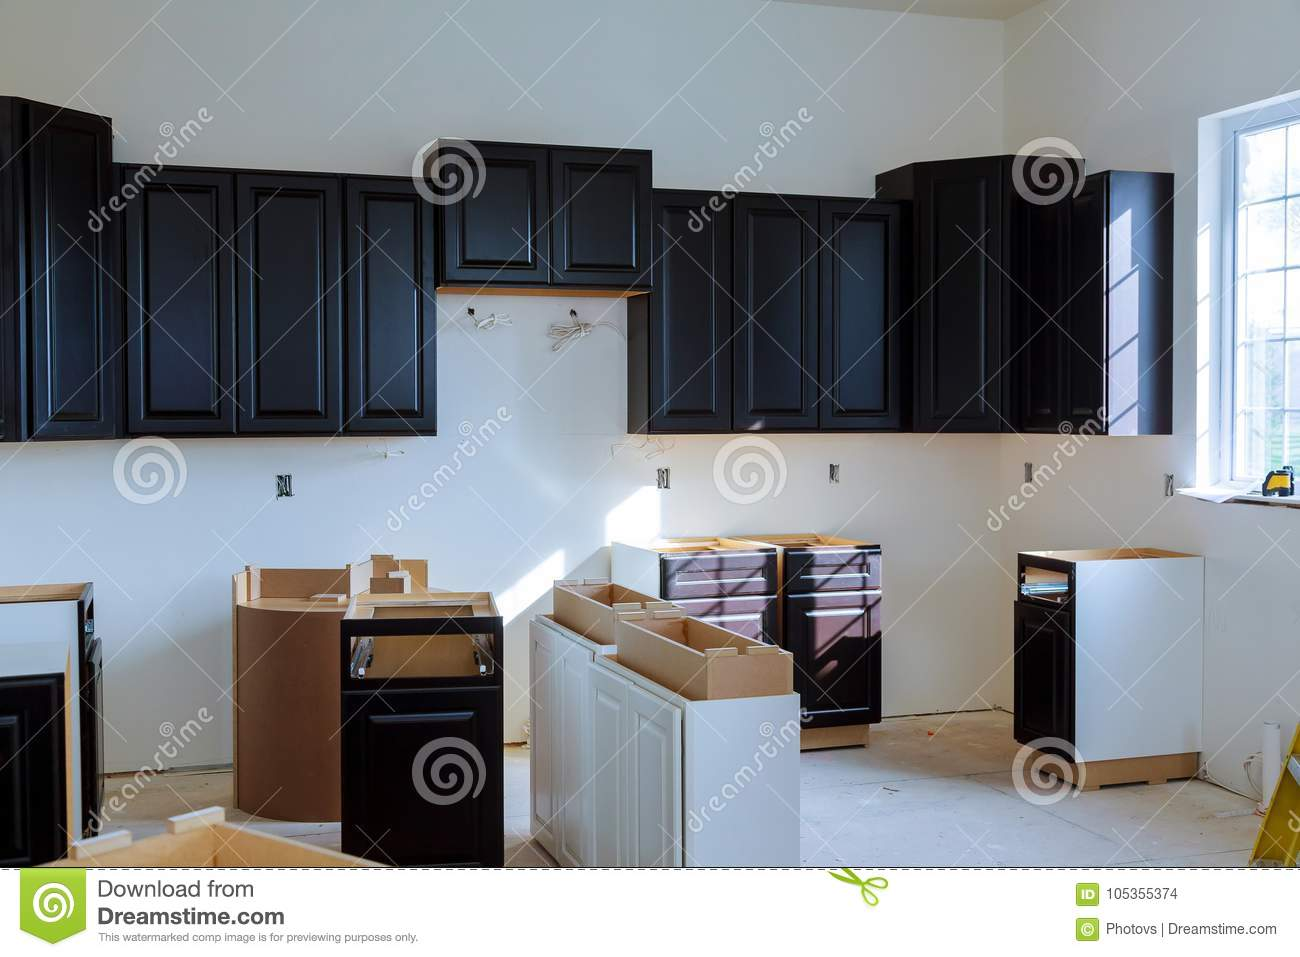 Kitchen Cabinet Design Plans Download Blind Corner Cabinet Island Drawers And Counter Cabinets Installed